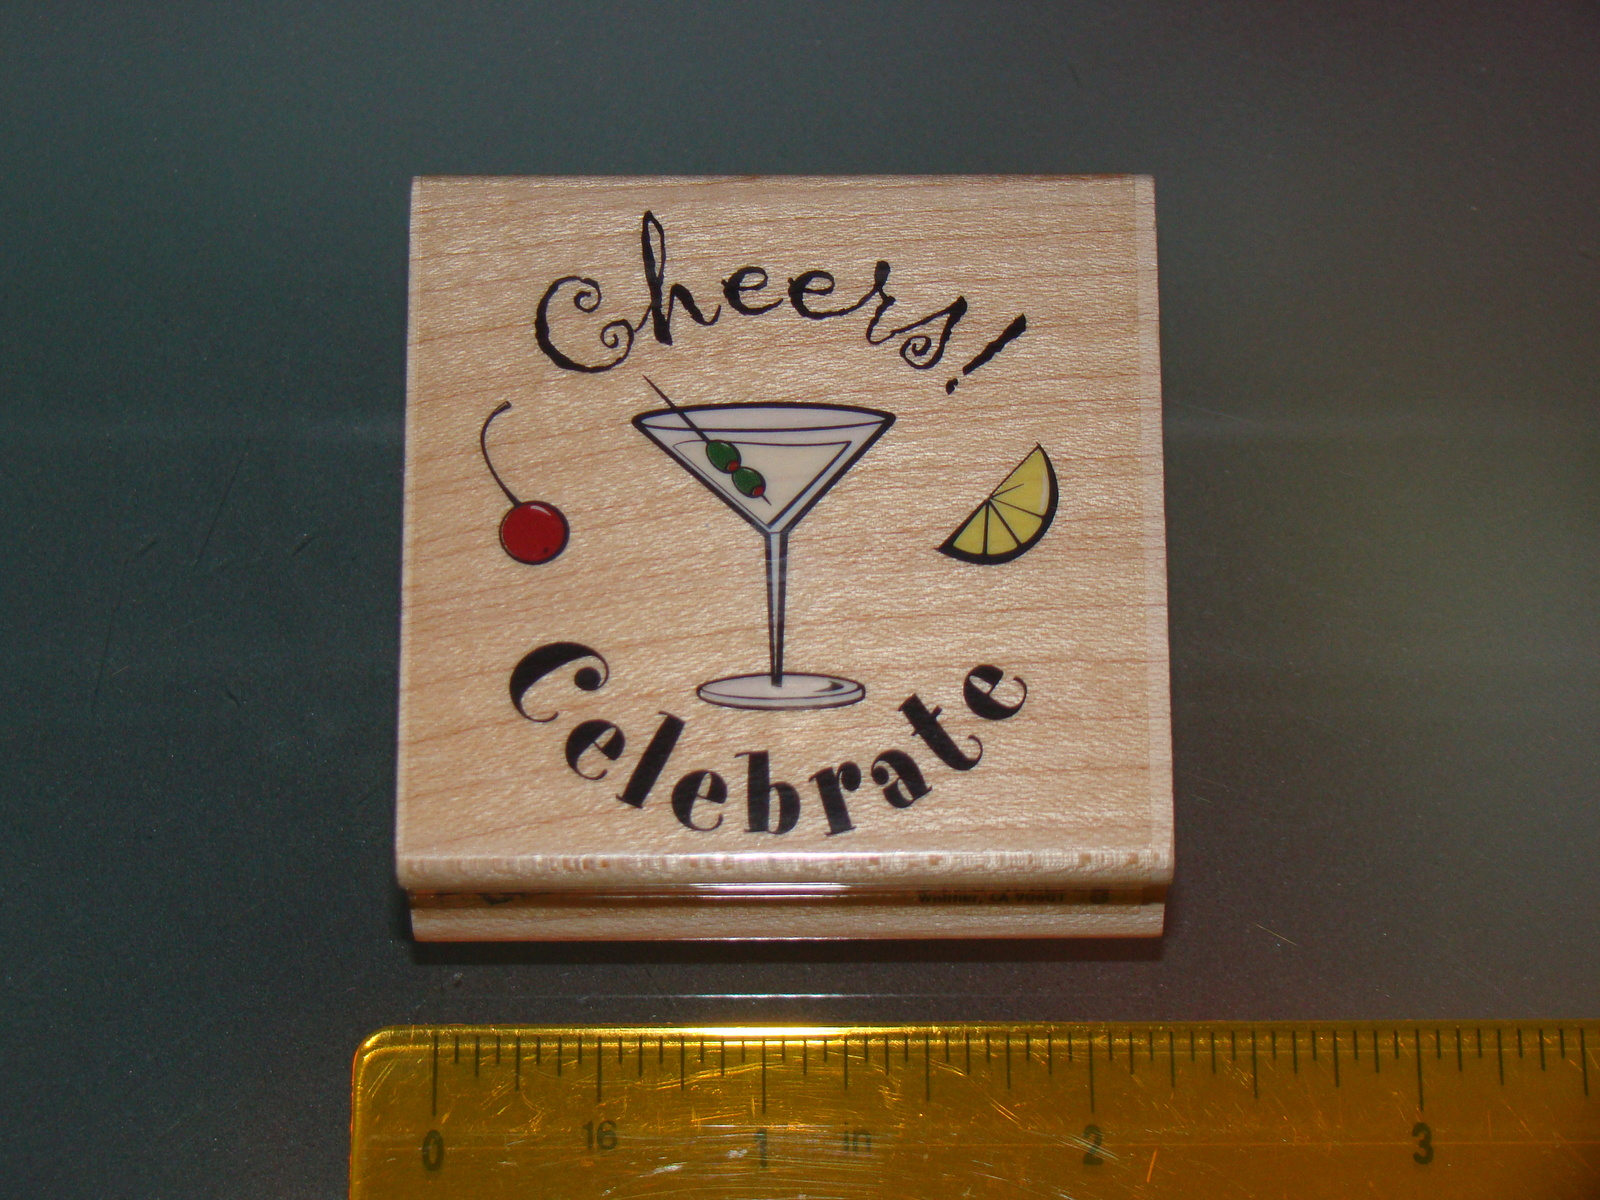 Rubber Stamps - cheers! Celebrate (New)